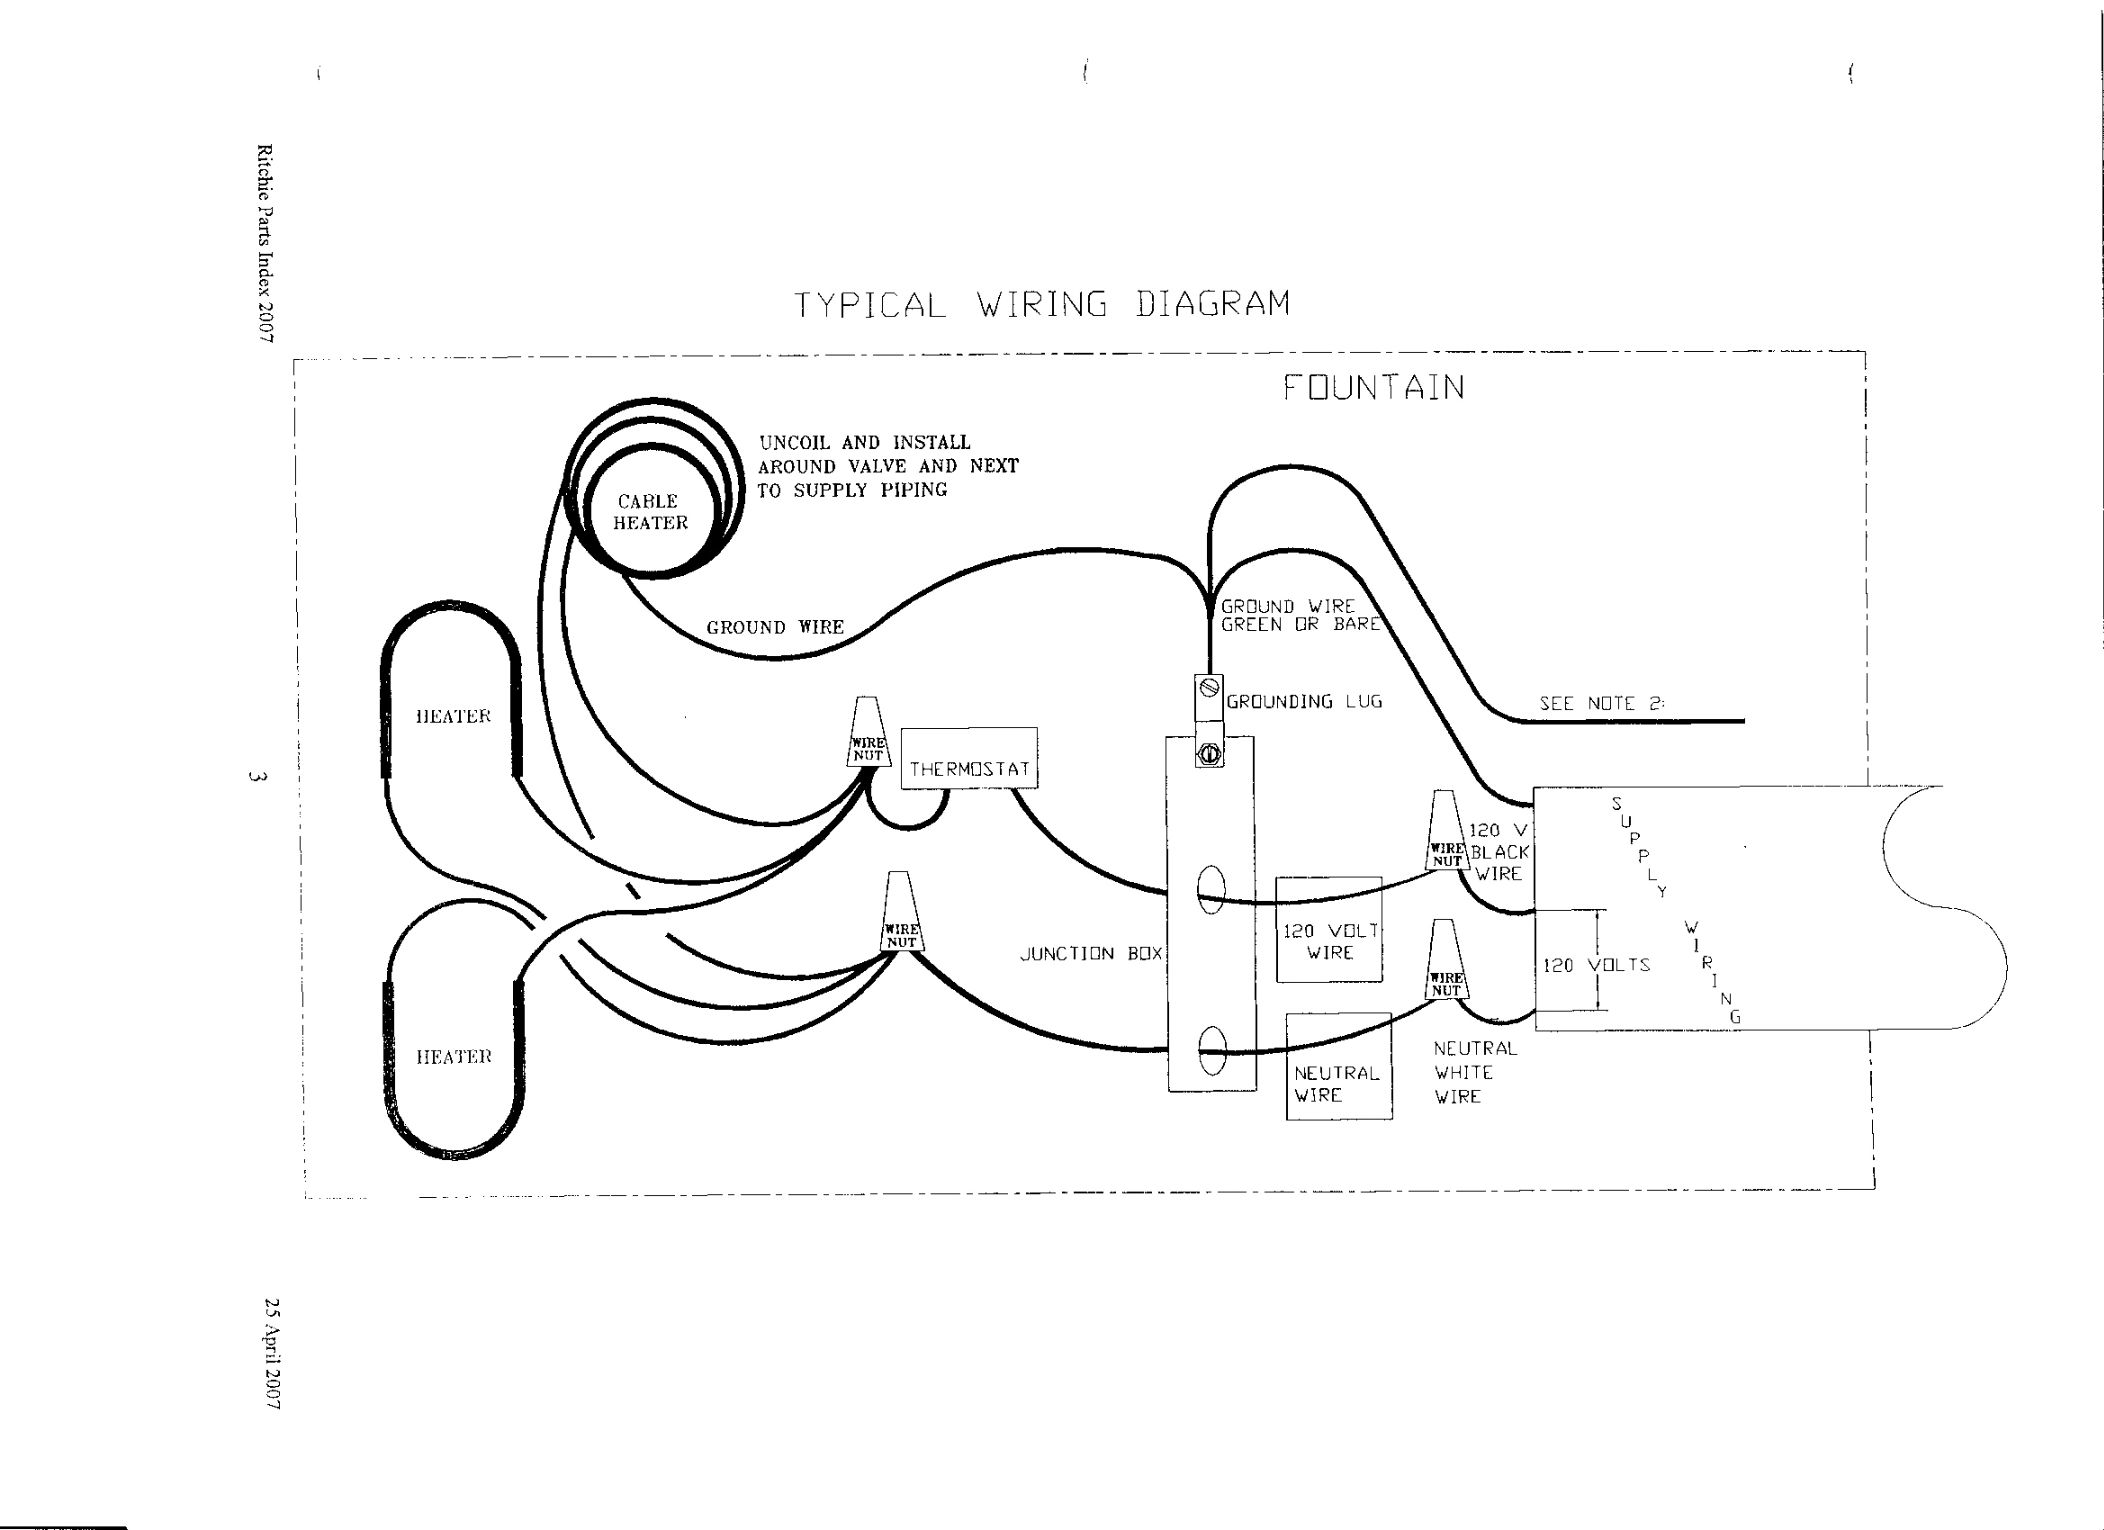 typical wiring diagram for waterers and fountains